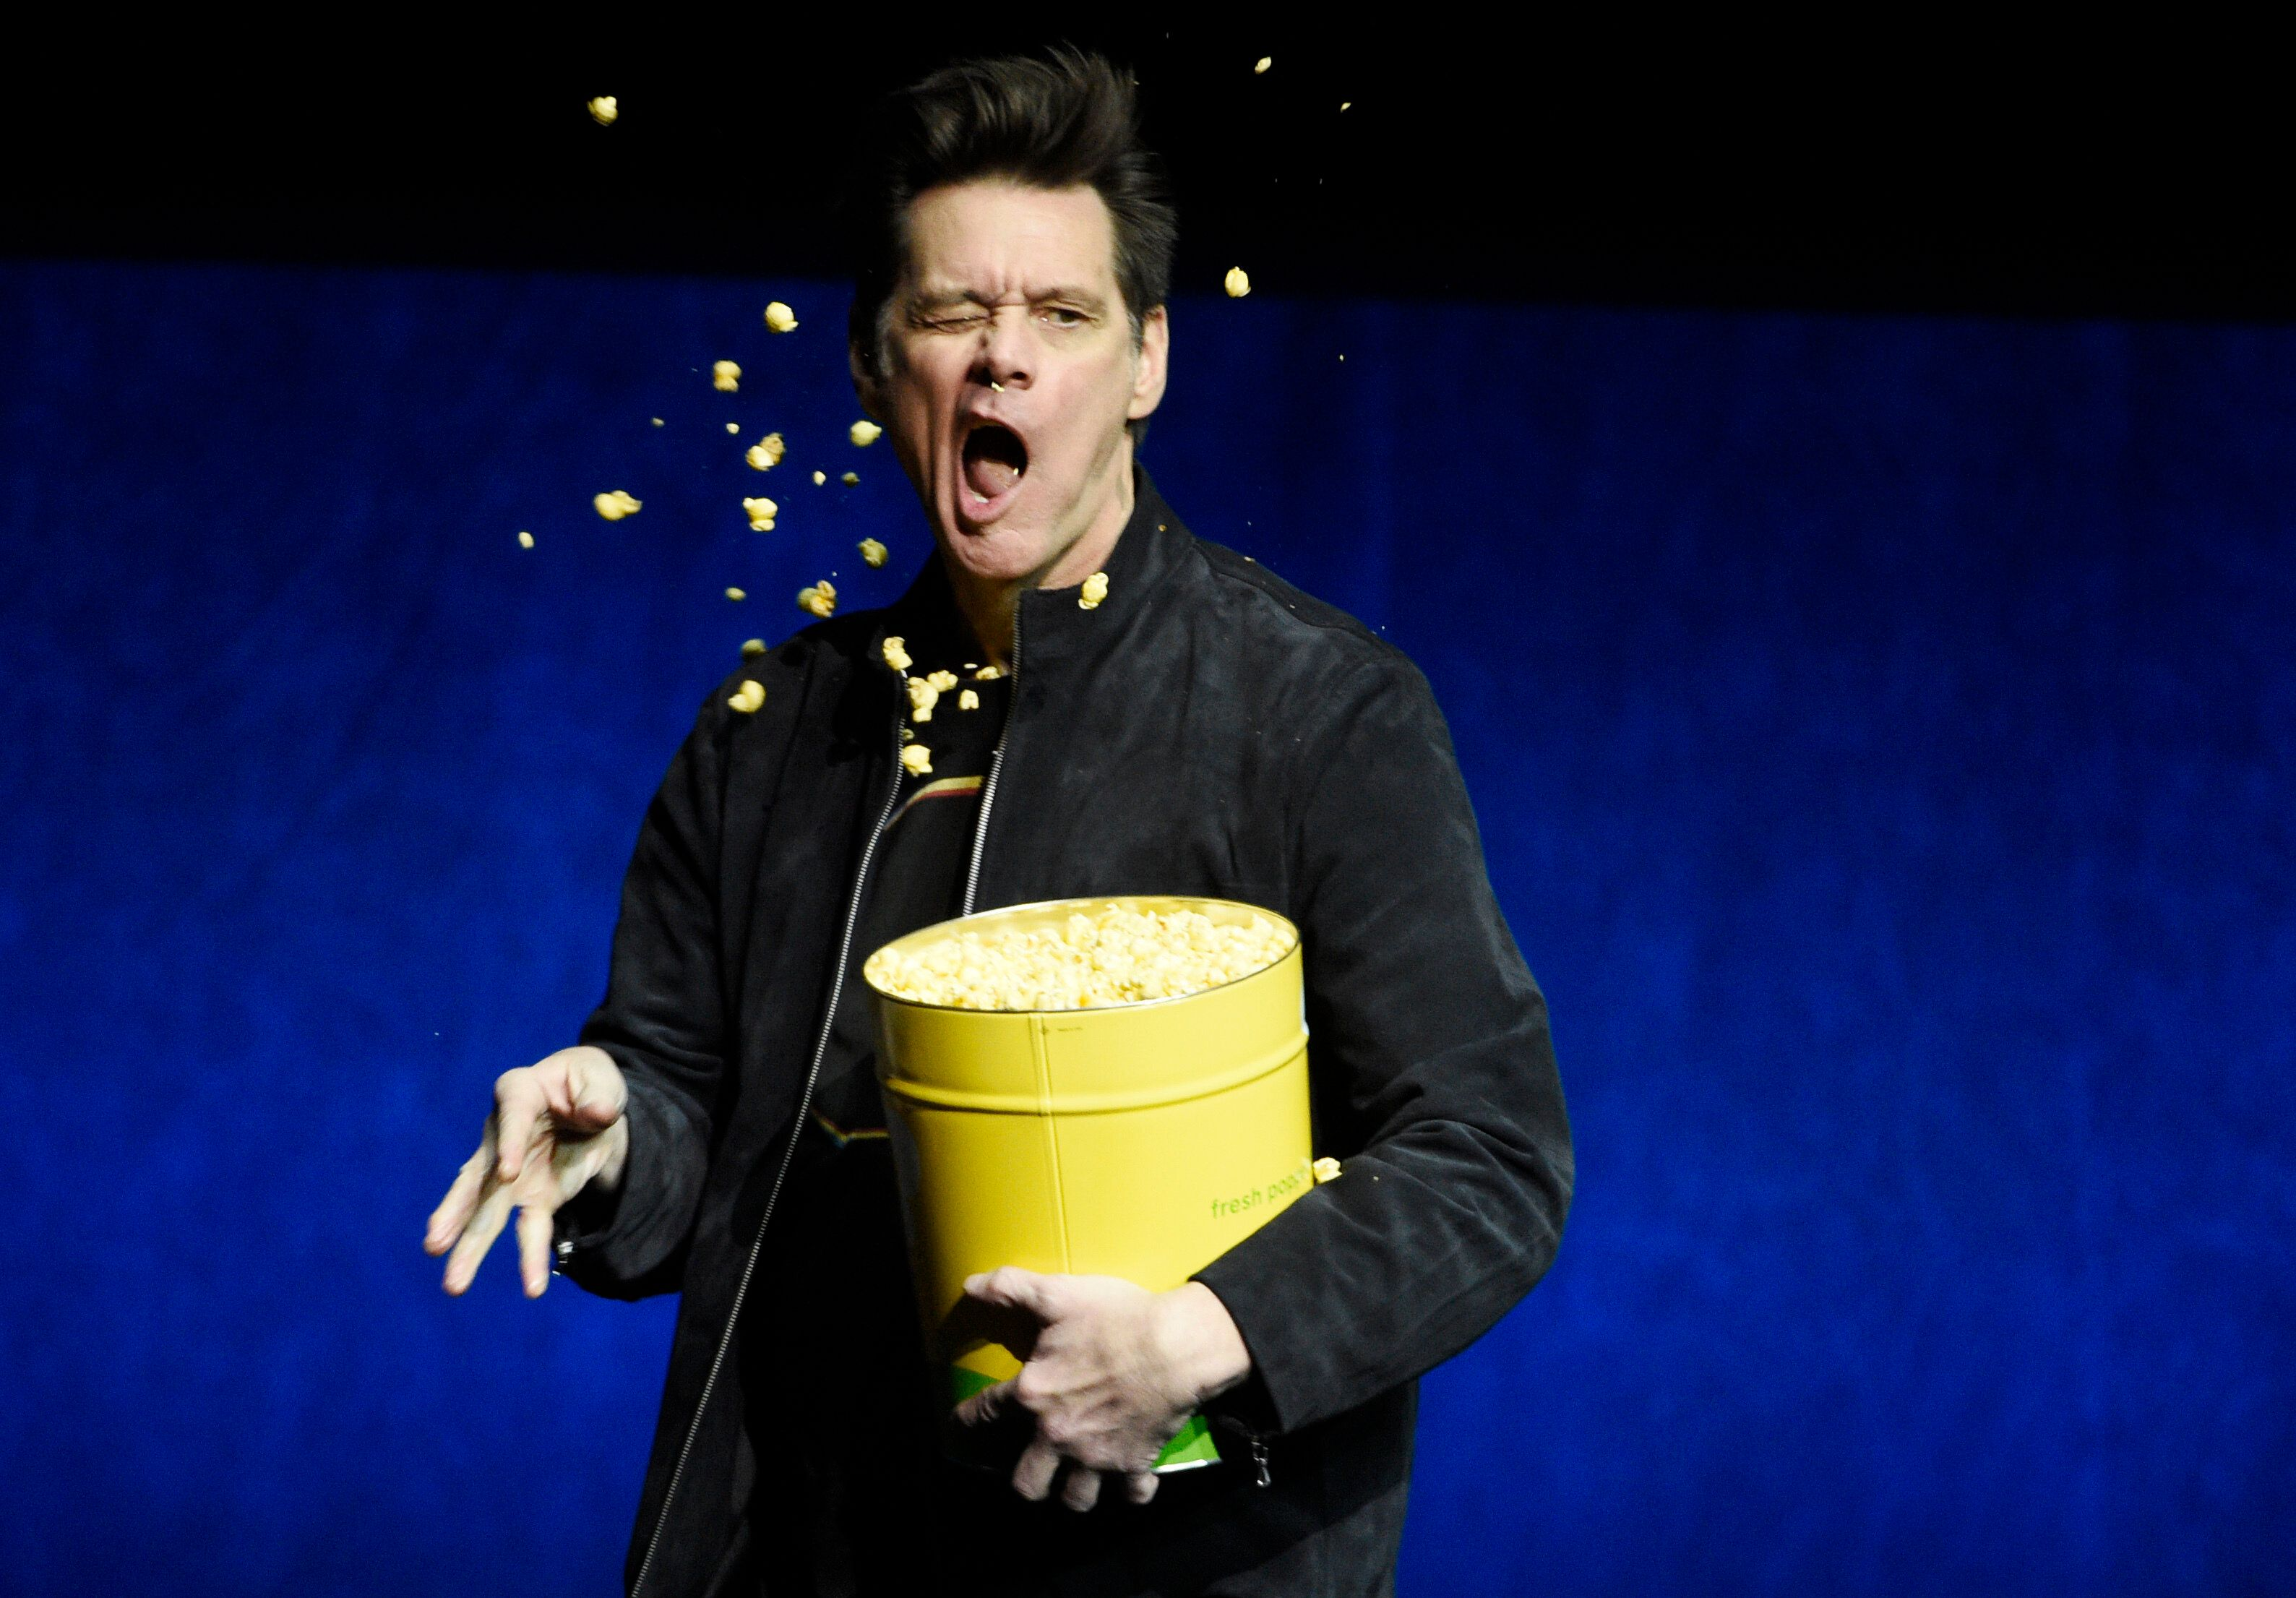 """Jim Carrey, a cast member in the upcoming film """"Sonic the Hedgehog,"""" throws popcorn into his face during the Paramount Pictures presentation at CinemaCon 2019, the official convention of the National Association of Theatre Owners (NATO) at Caesars Palace, Thursday, April 4, 2019, in Las Vegas. (Photo by Chris Pizzello/Invision/AP)"""